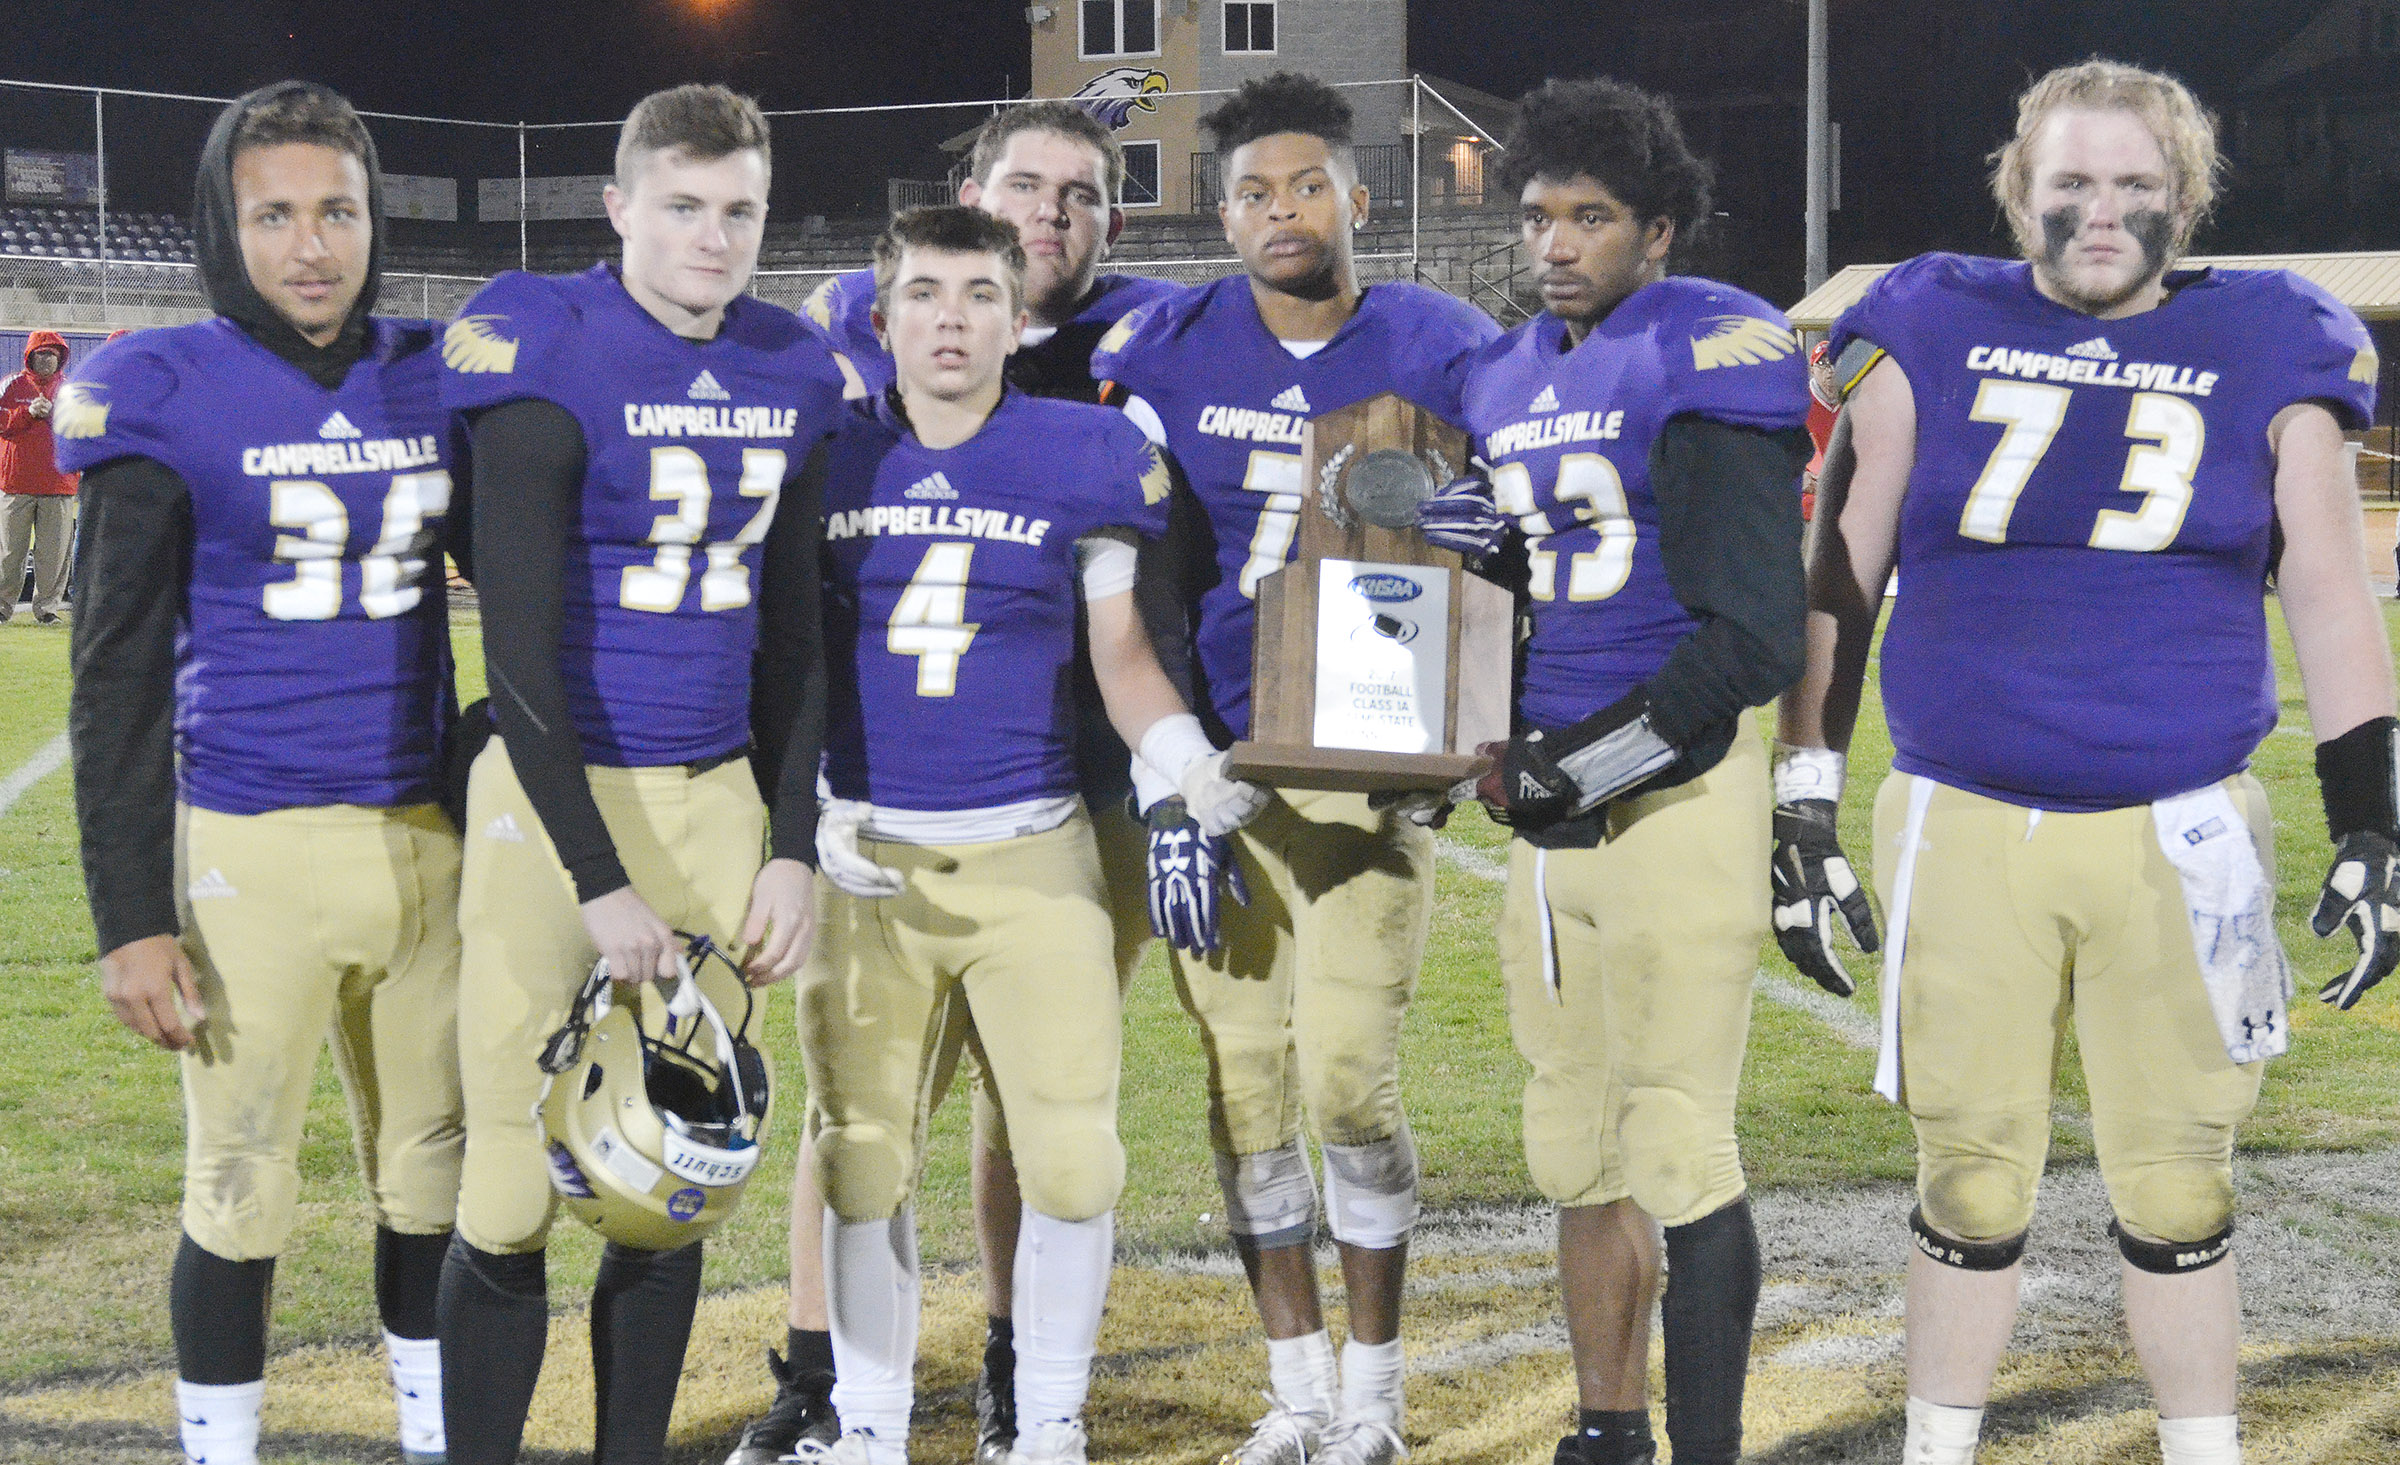 CHS football seniors, from left, Ethan Lay, Bryce Richardson, Austin Carter, Ryan Wiedewitsch, Devonte Cubit, Tyrion Taylor and Ryan Jeffries receive their semi-finals runner-up trophy.